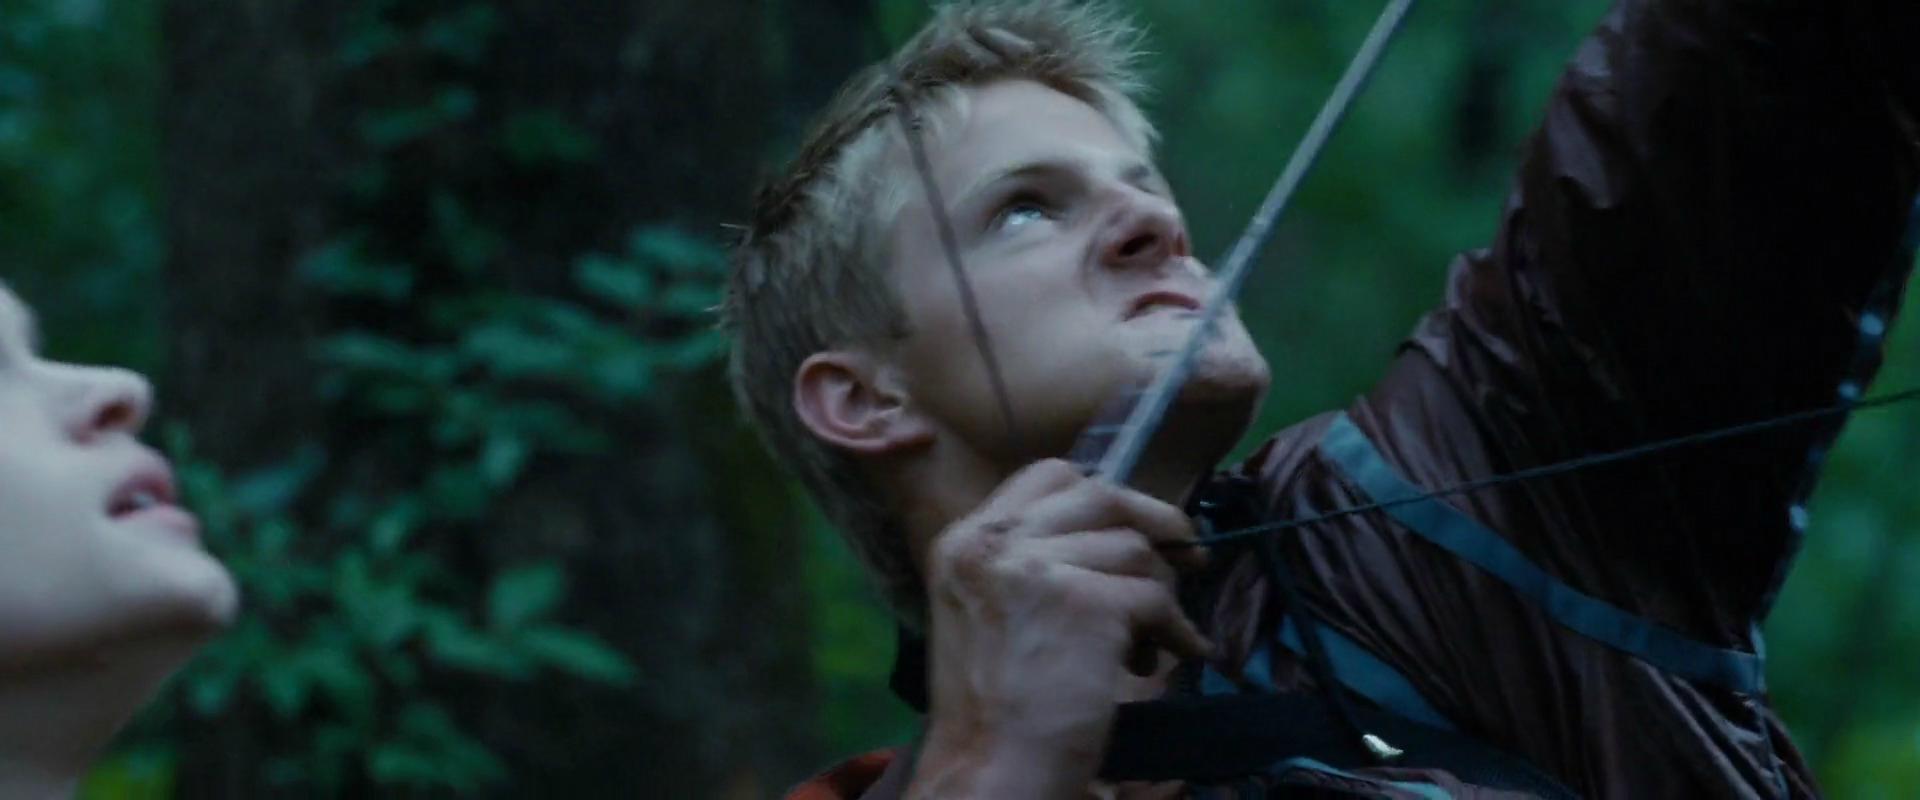 Are cato and glimmer hookup in real life